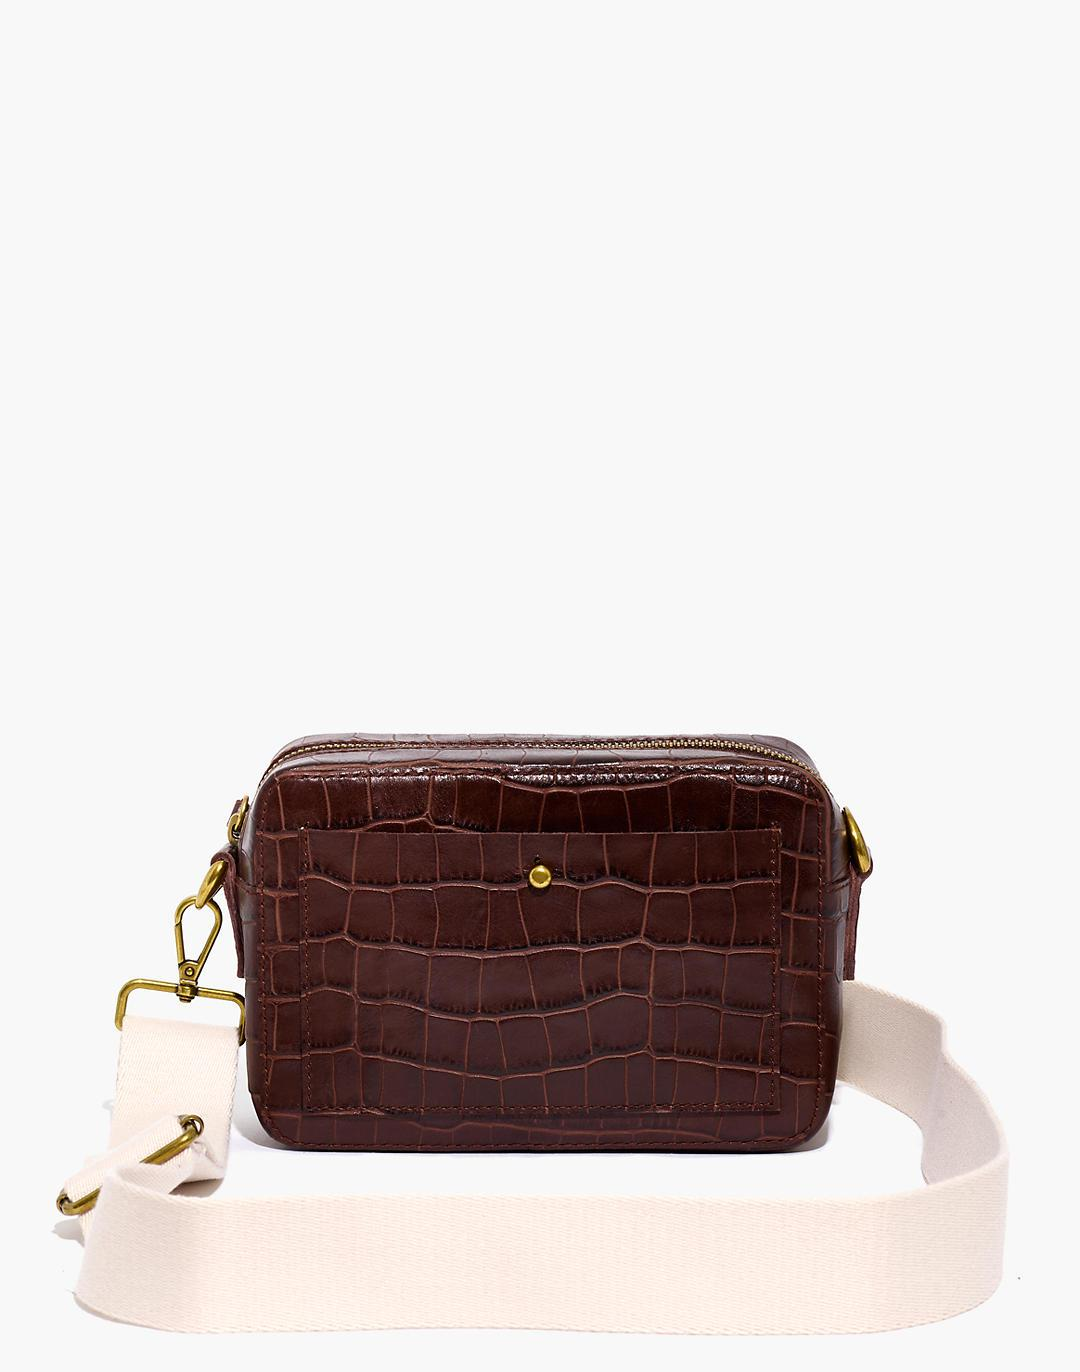 The Transport Camera Bag: Croc Embossed Leather Edition